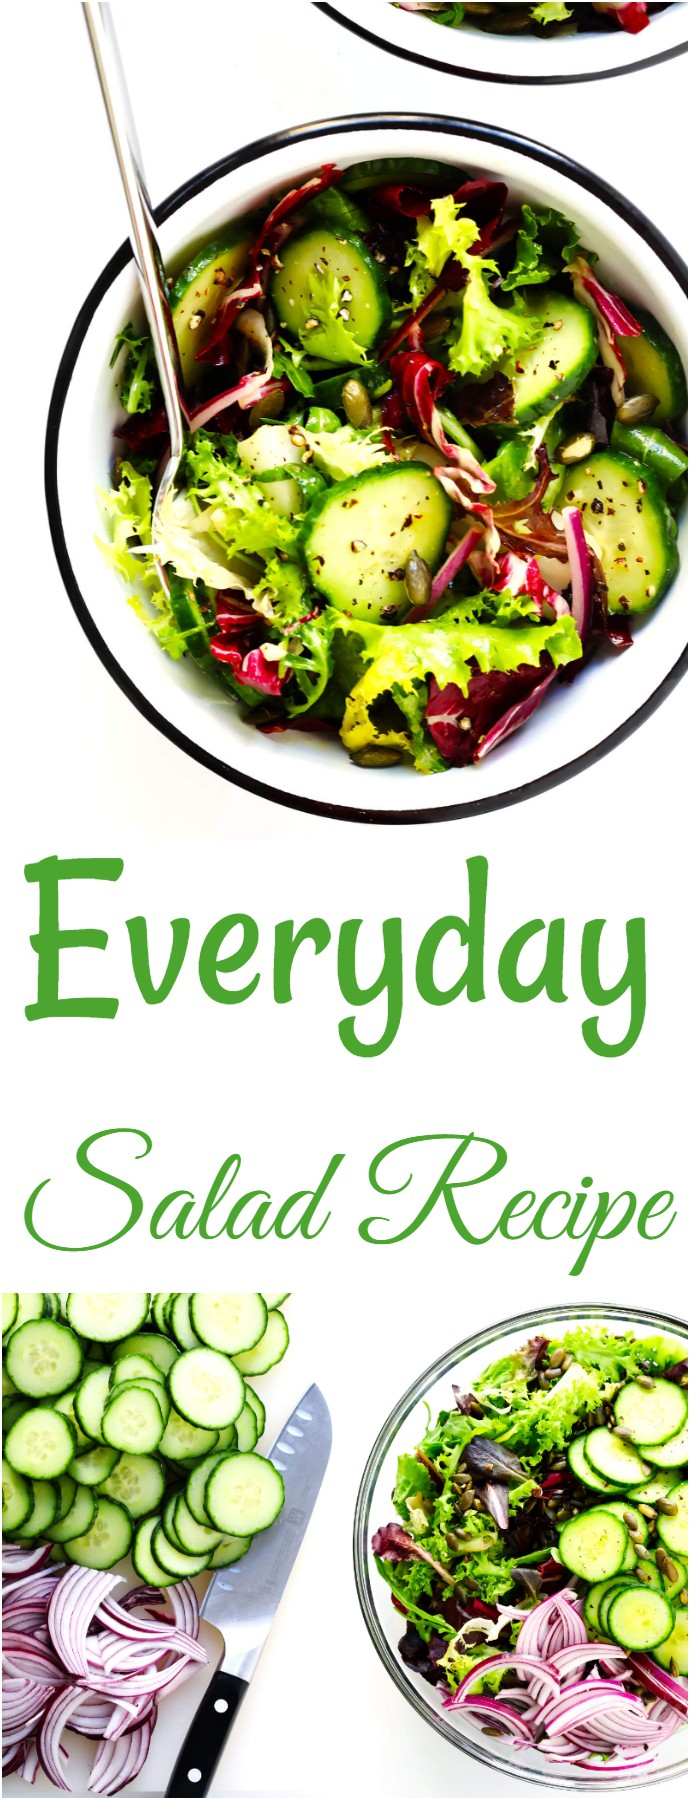 Everyday Salad Recipe